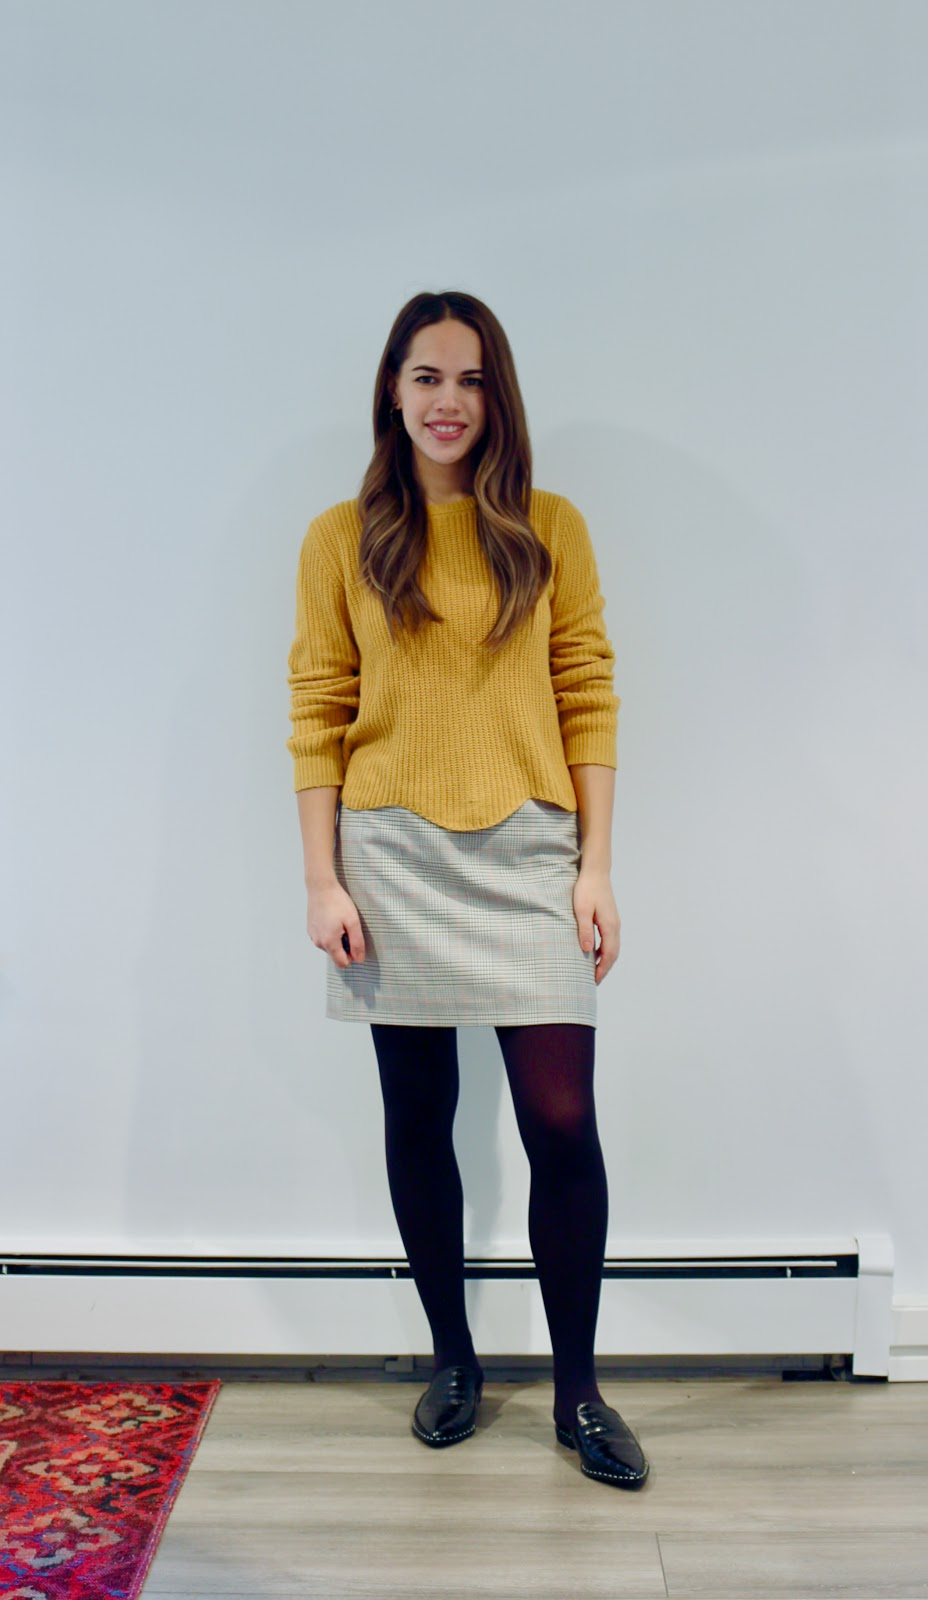 Jules in Flats - Mustard Sweater & Plaid Mini Skirt (Business Casual Fall Workwear on a Budget)